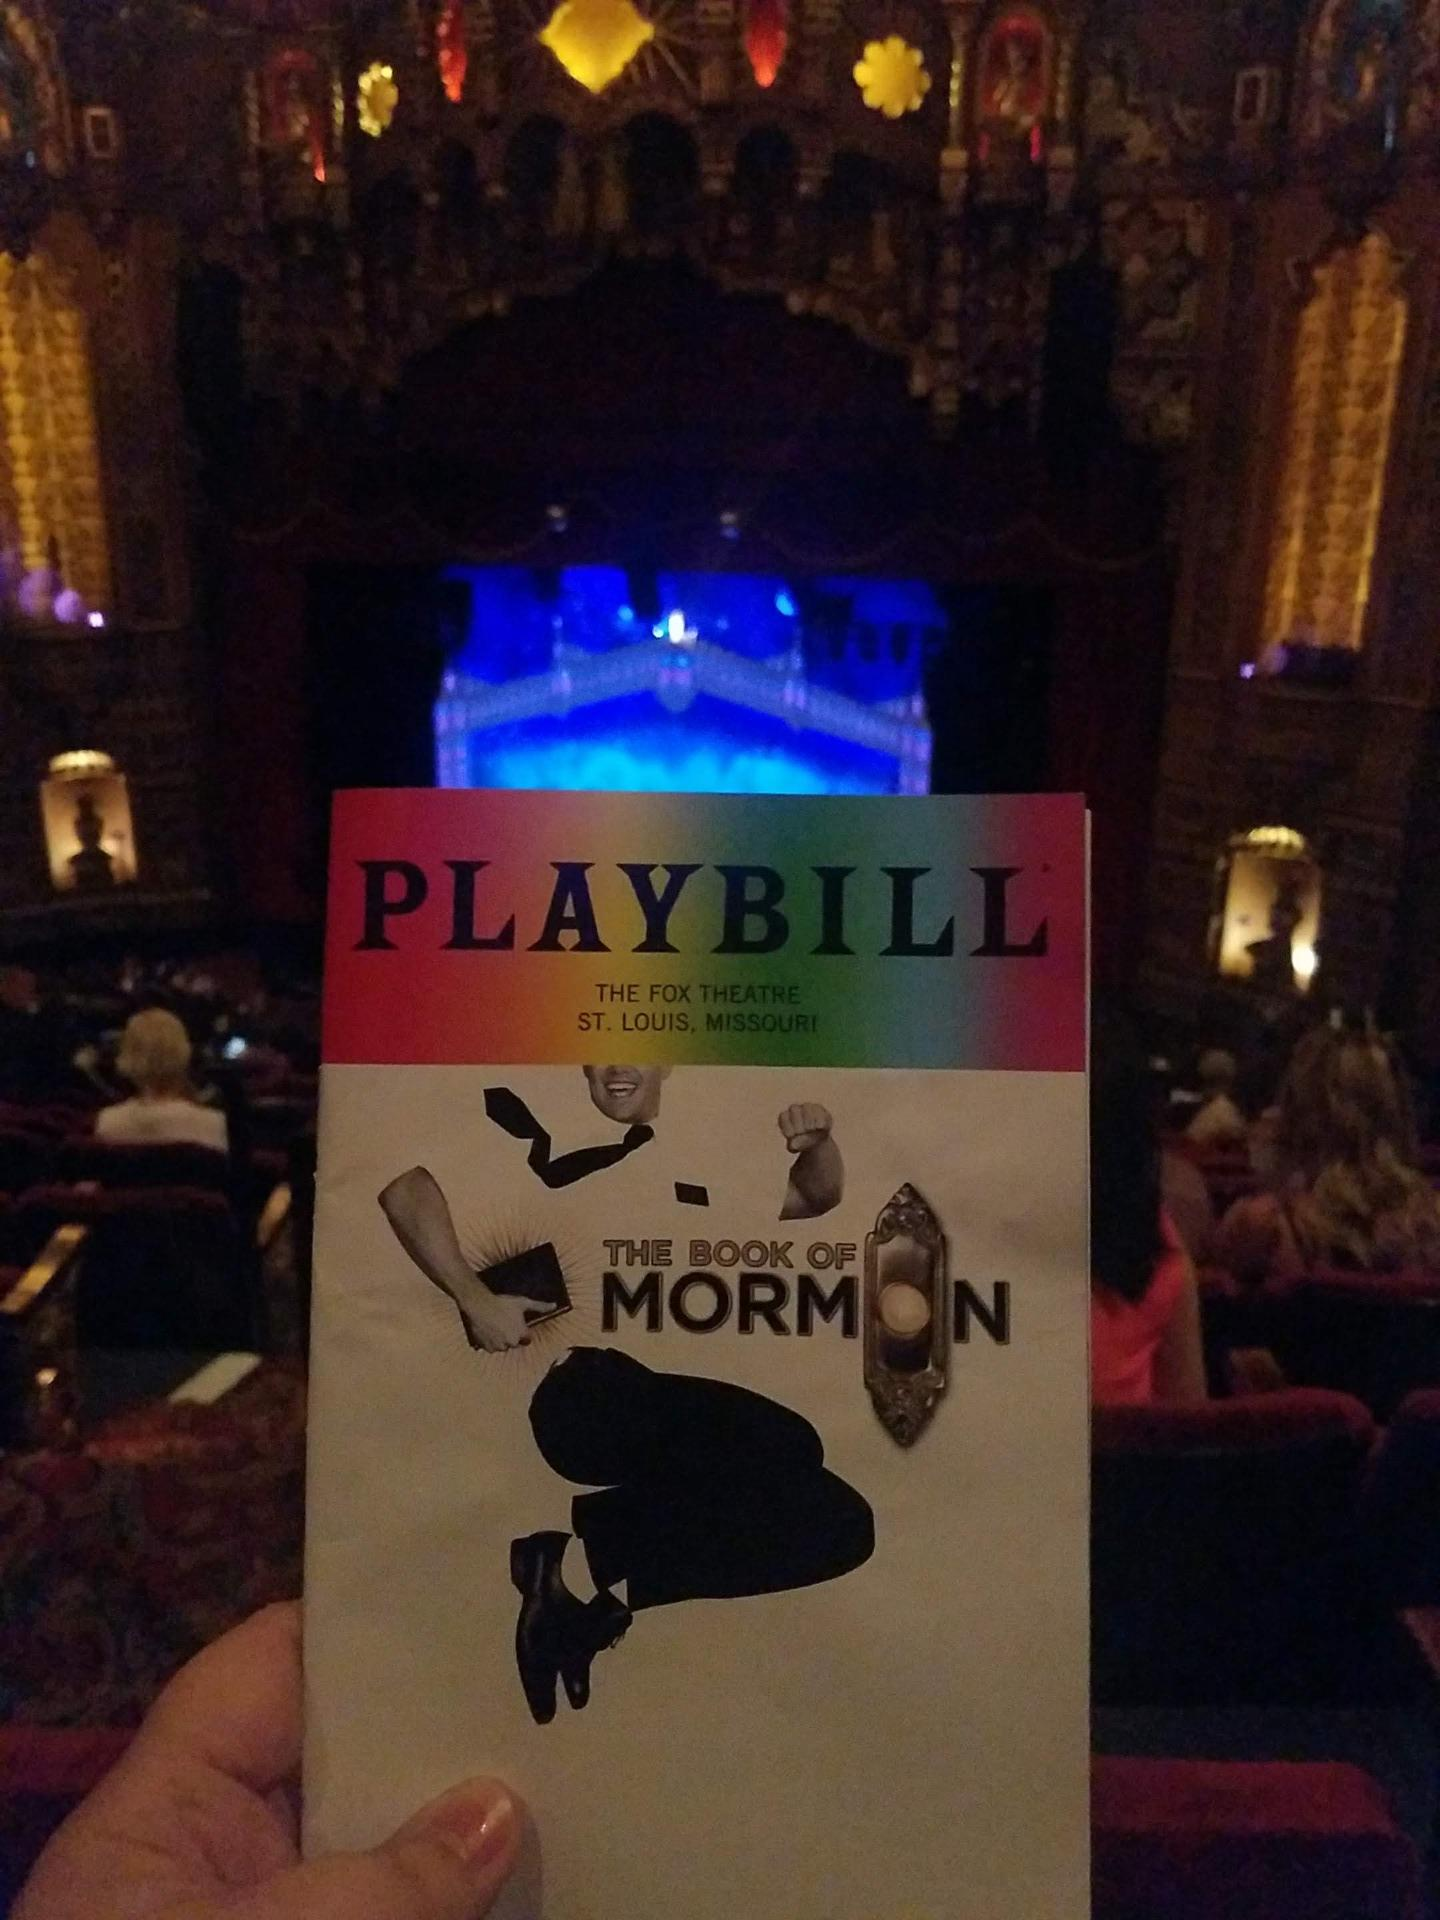 The Fabulous Fox Theatre (St. Louis) Section Lower Balcony 5 Row K Seat 2